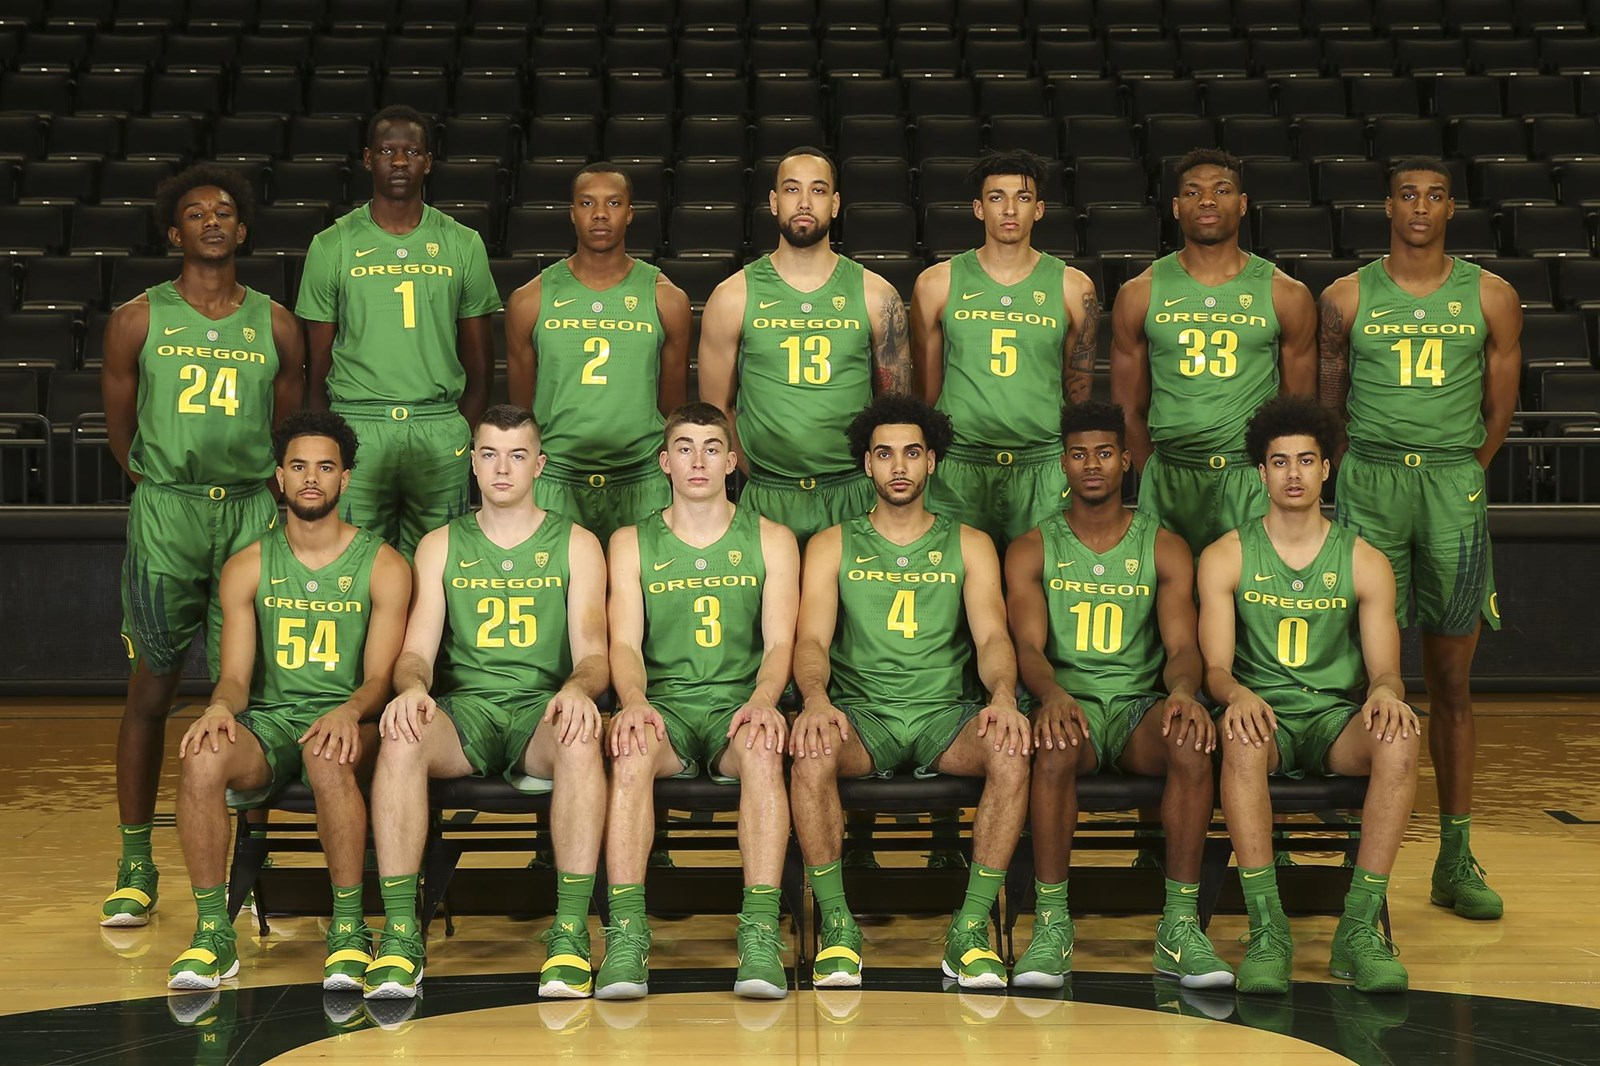 2018-19 men's basketball roster - university of oregon athletics